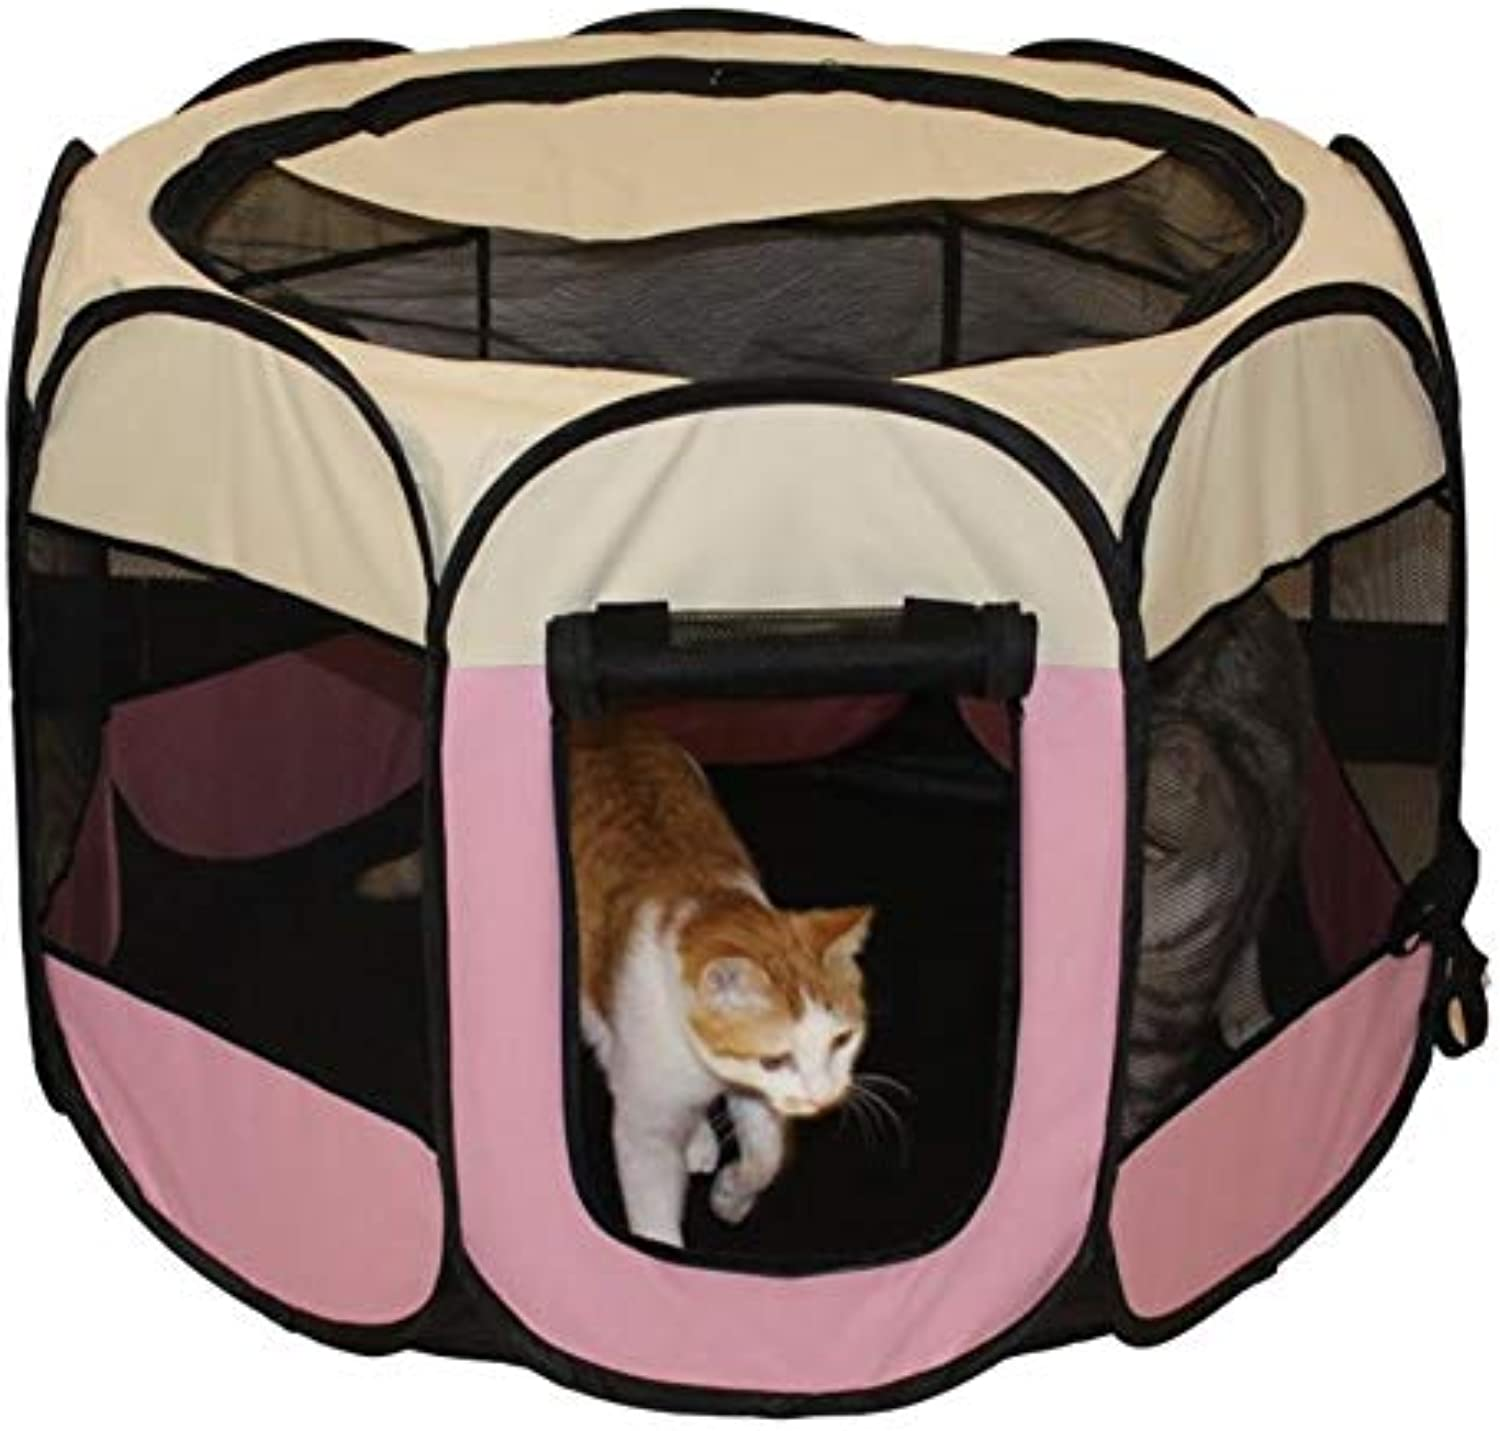 AMhuui Portable Foldable Pet Playpen,Premium Playpen Indoor Outdoor, Dog Cat Puppy Exercise Pen Kennel, Nest with Mat Dog Cat Bed House for Dogs